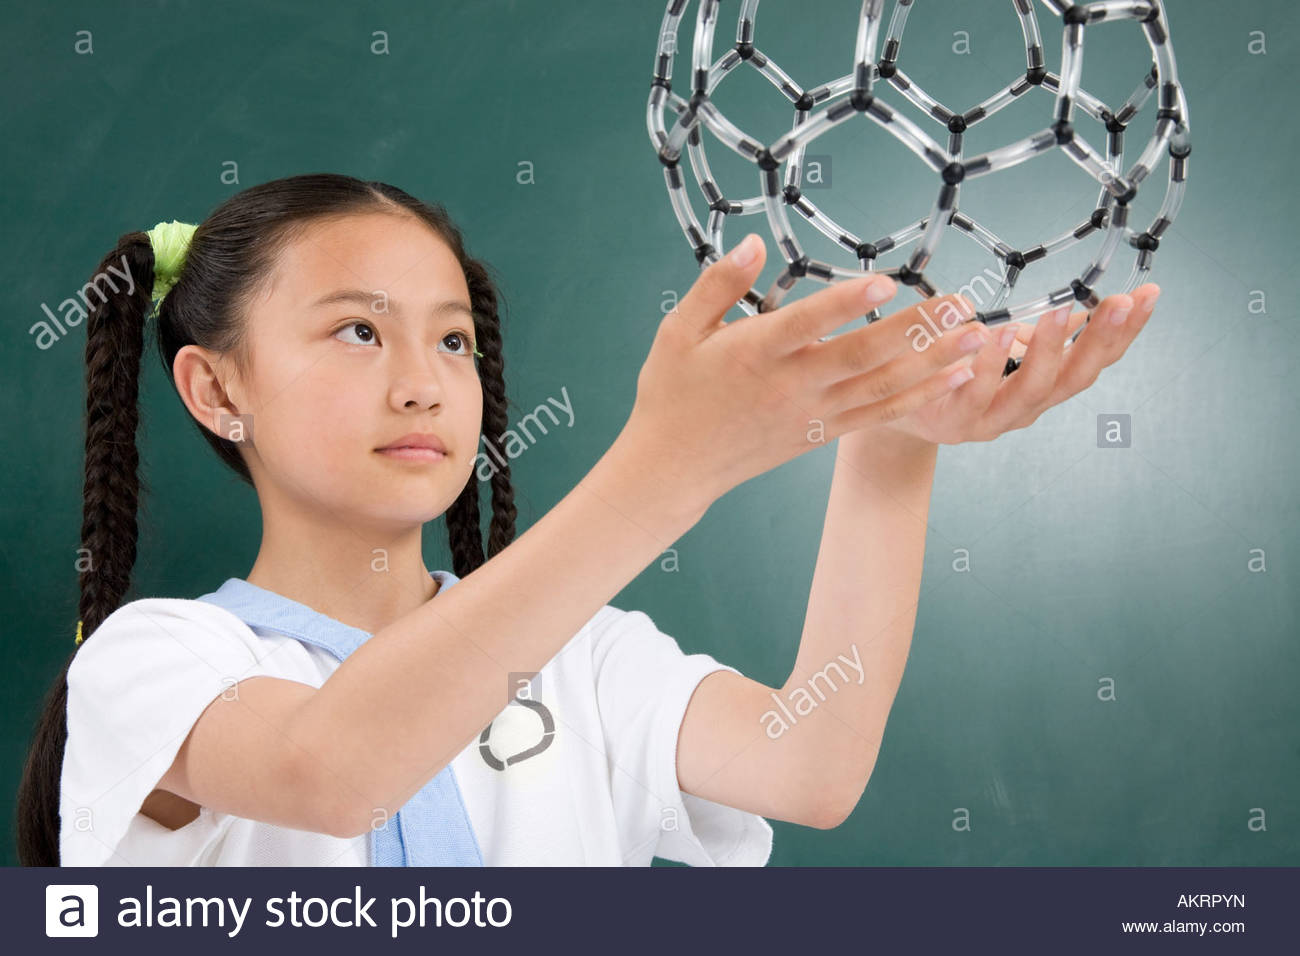 A girl holding a science model - Stock Image